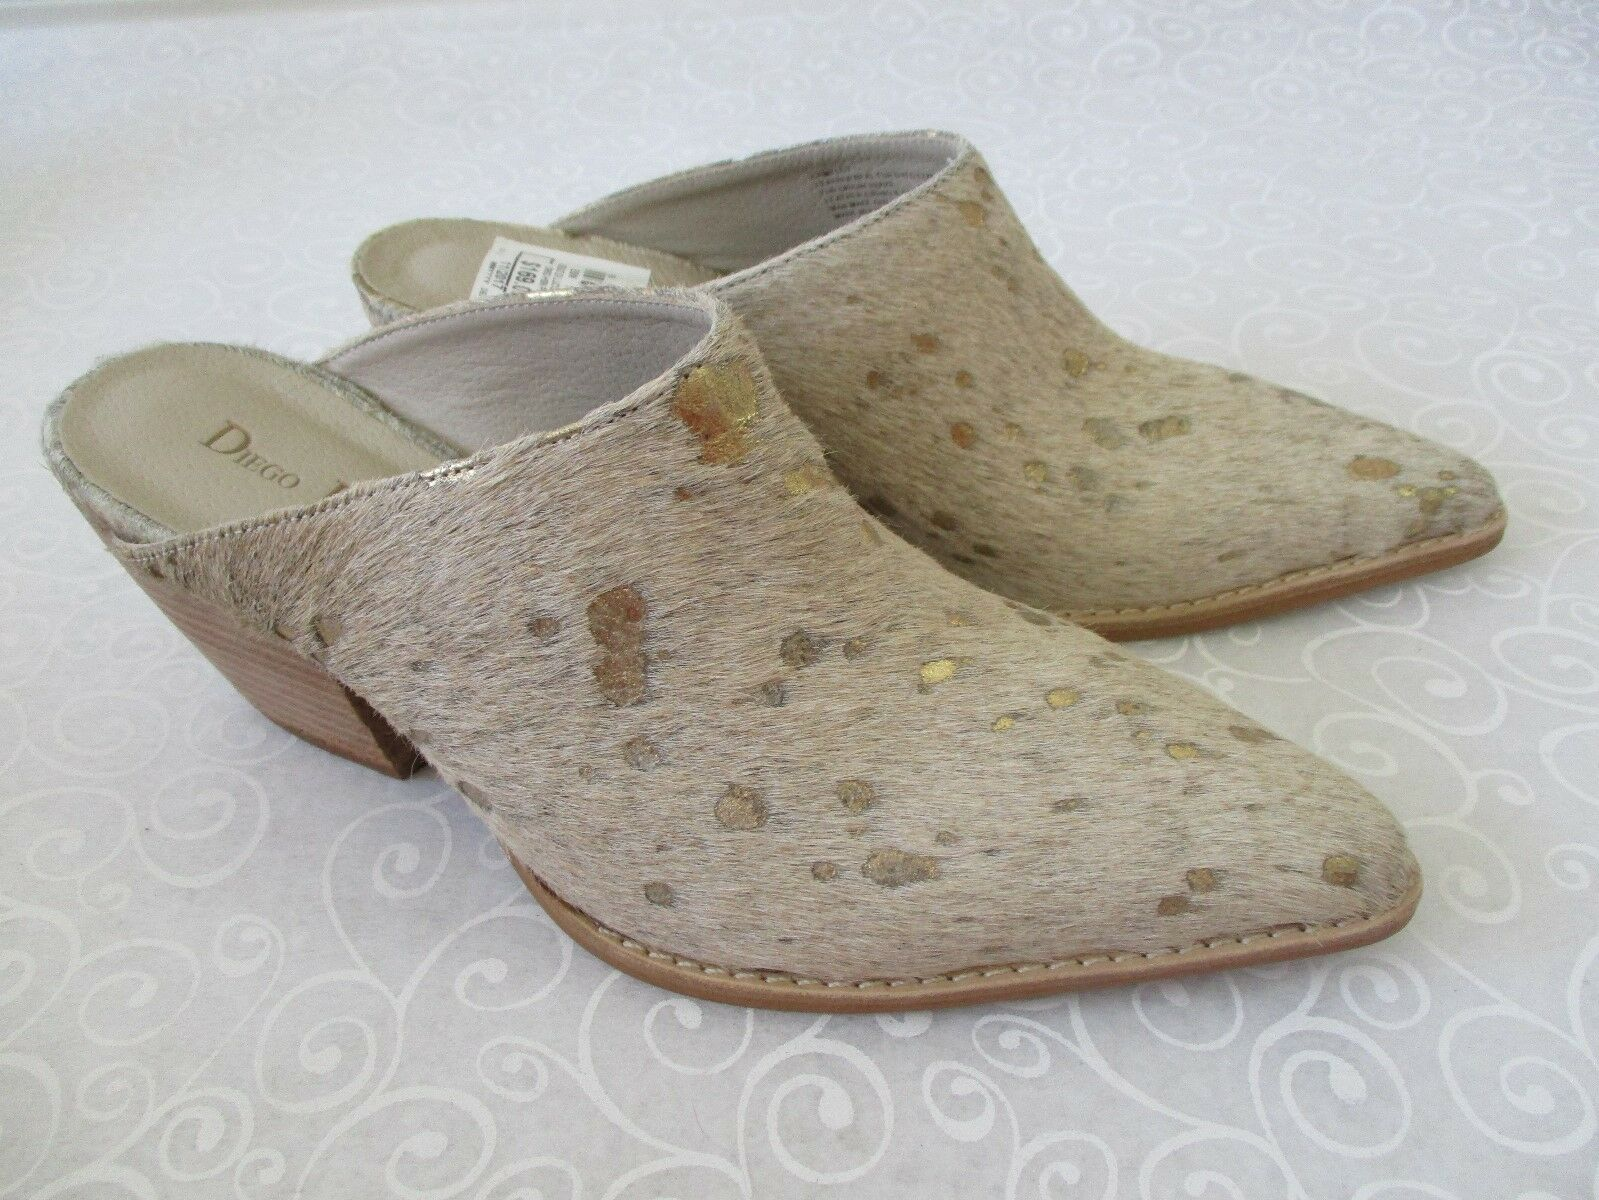 DIEGO DI LUCCA CAMEL OPEN TOE 100% LEATHER COW 1/2 HAIR Schuhe SIZE 7 1/2 COW M - NEW 82ef7c